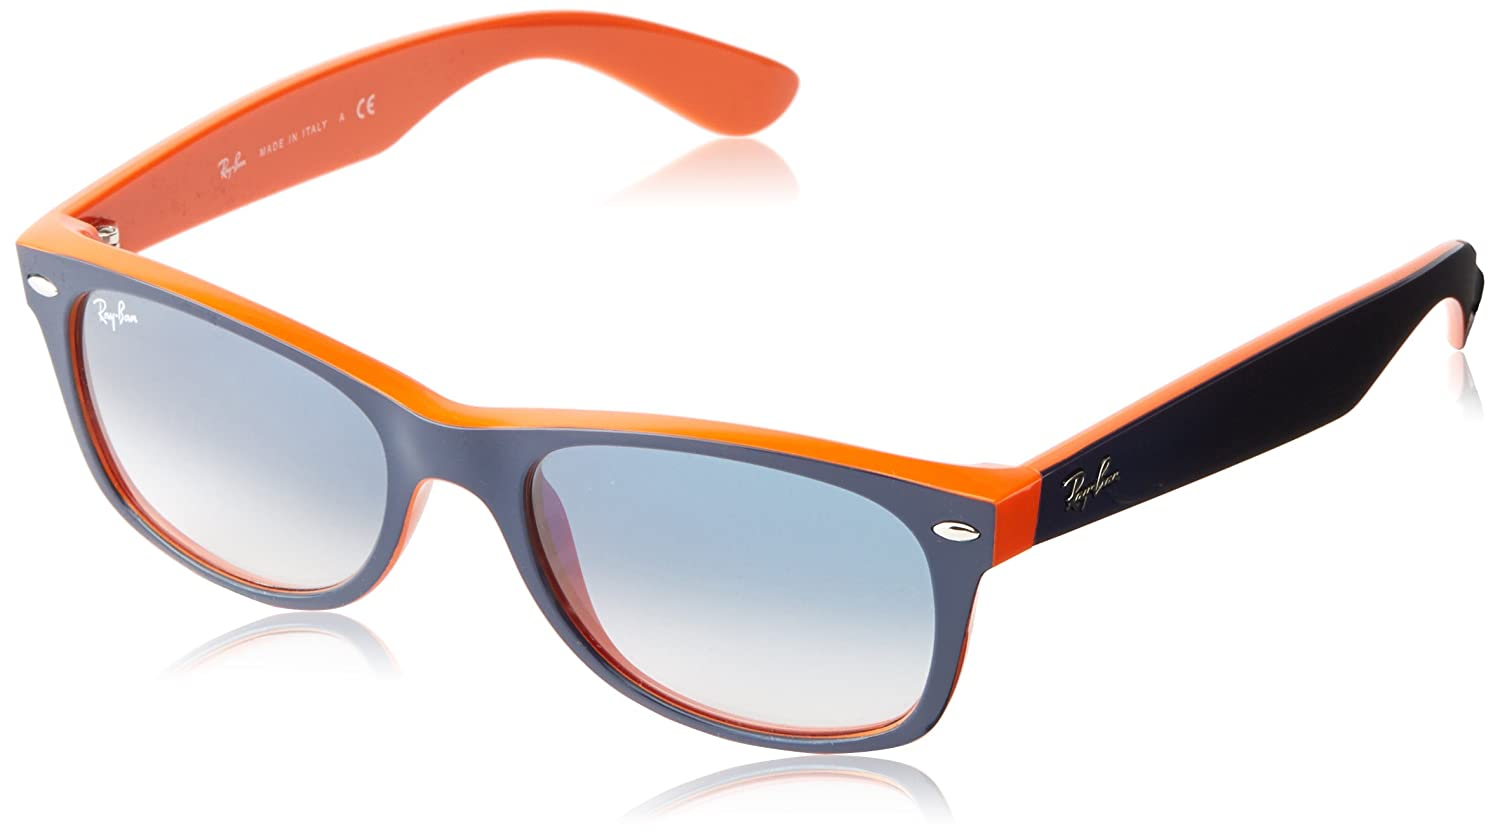 ccccd9d5a3 ... discount code for ray ban rb2132 new wayfarer sunglassesblue  orangelight blue gradient ray ban amazon.